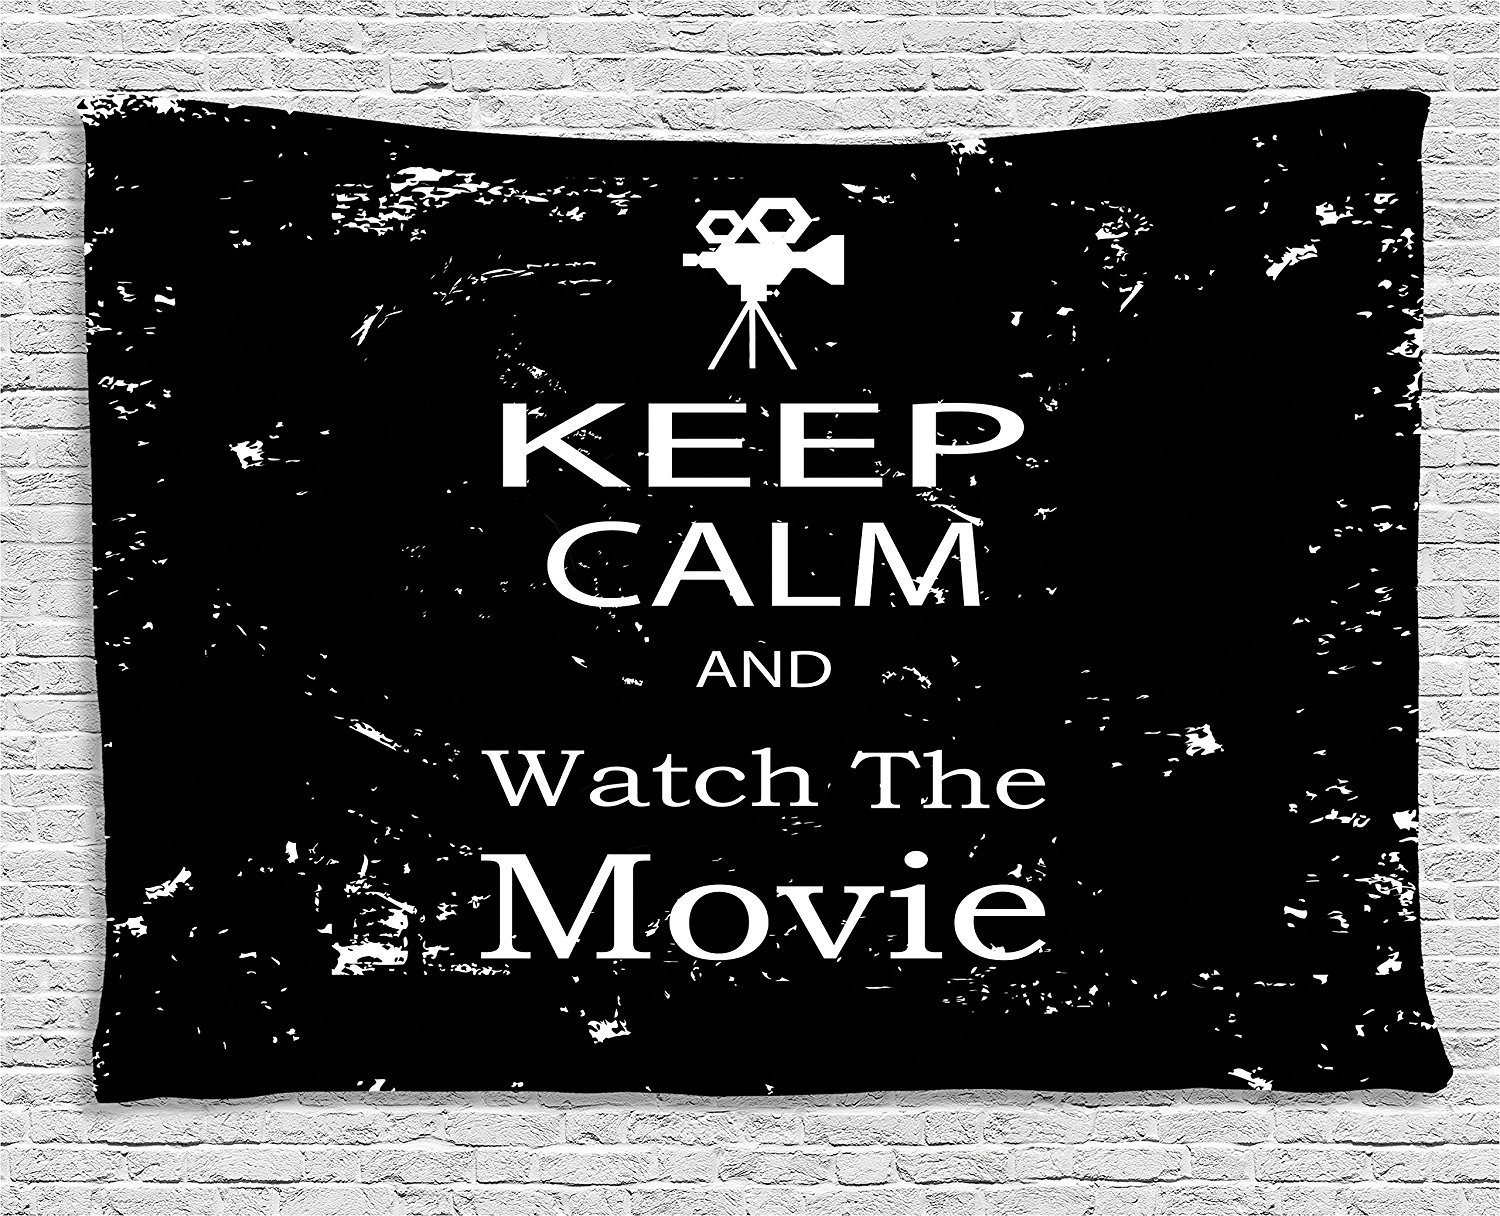 asddcdfdd Keep Calm Tapestry, Watch the Movie Quote for Film Buffs Grungy Weathered Backdrop with Old Camera, Wall Hanging for Bedroom Living Room Dorm, 80 W X 60 L Inches, Black White